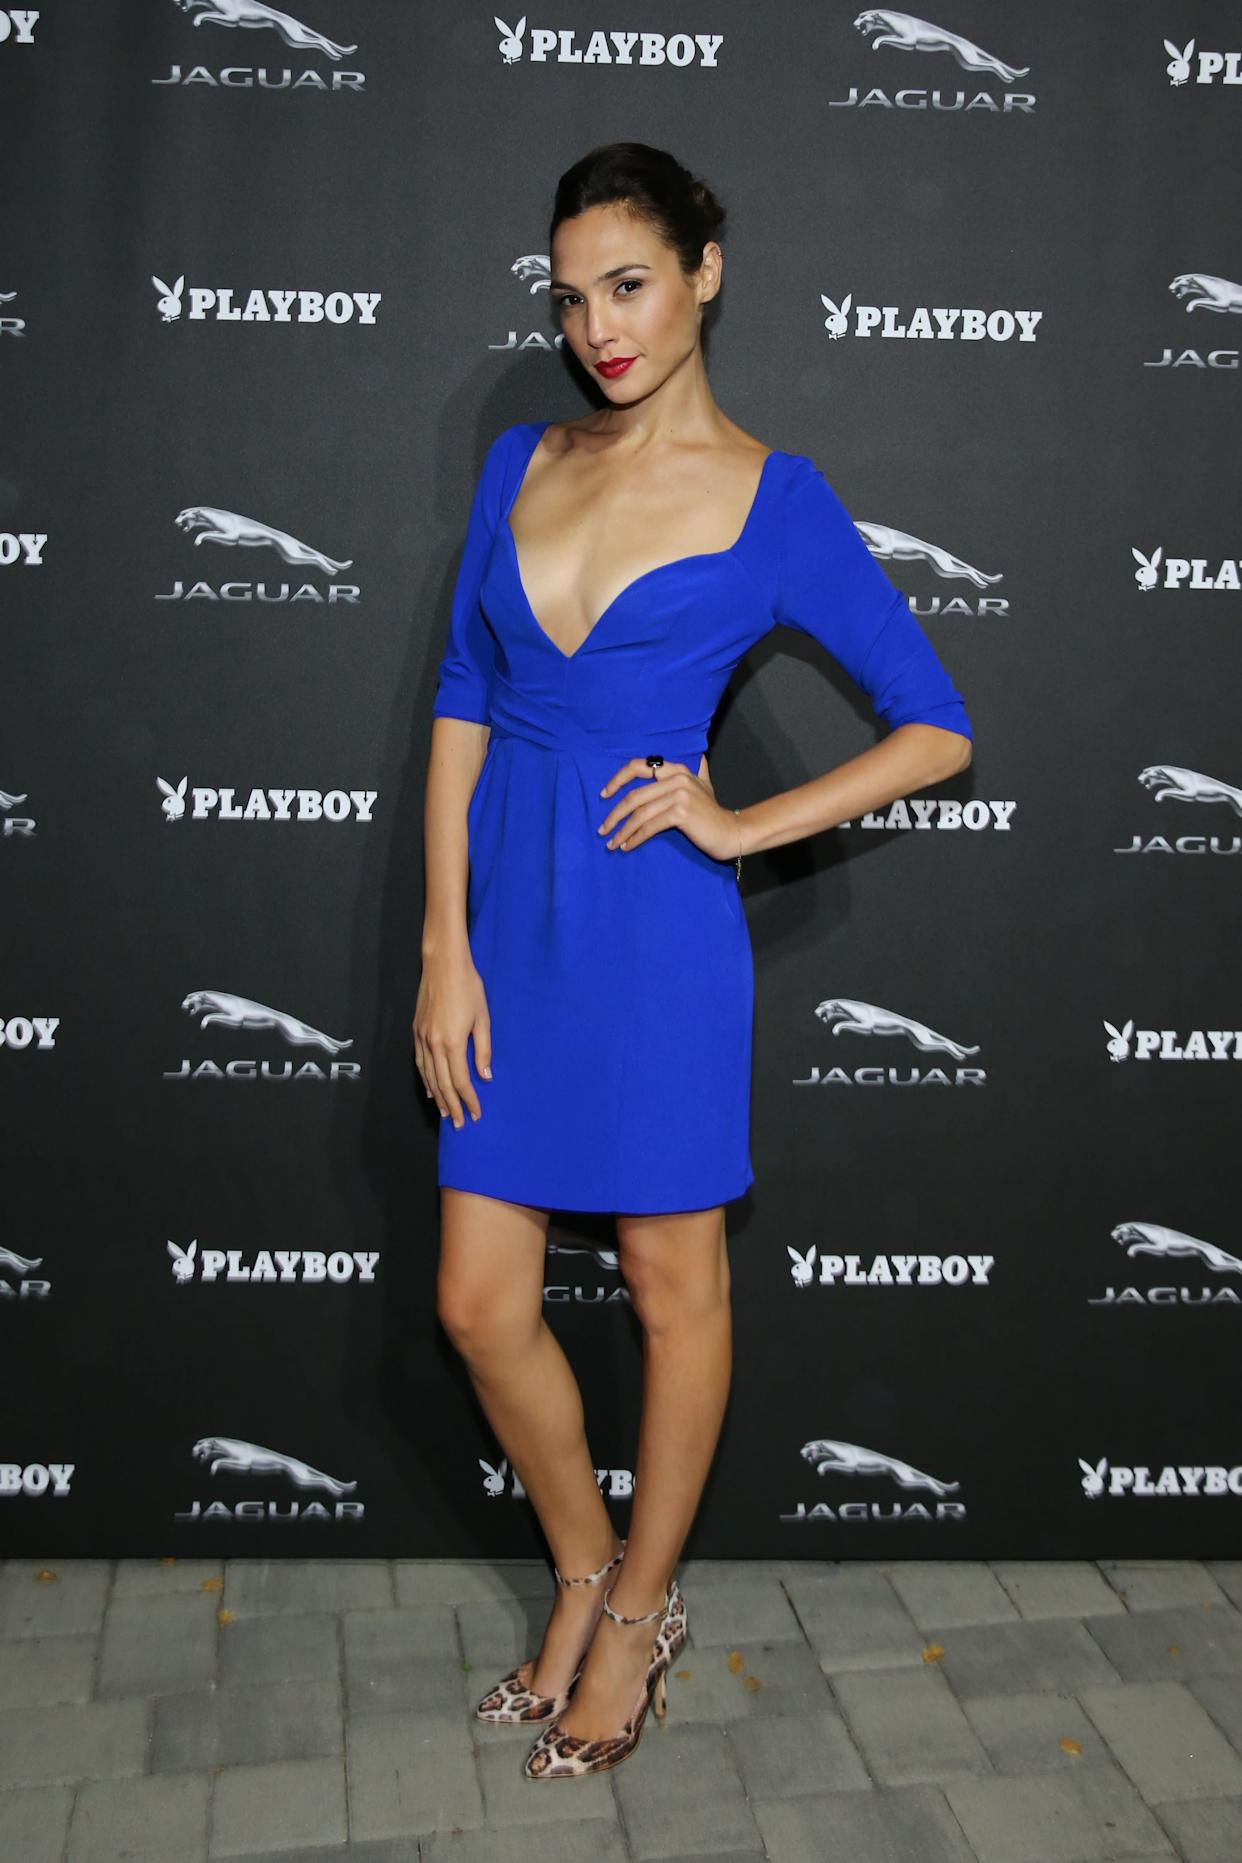 At a reception for Jaguar and Playboy Magazine.